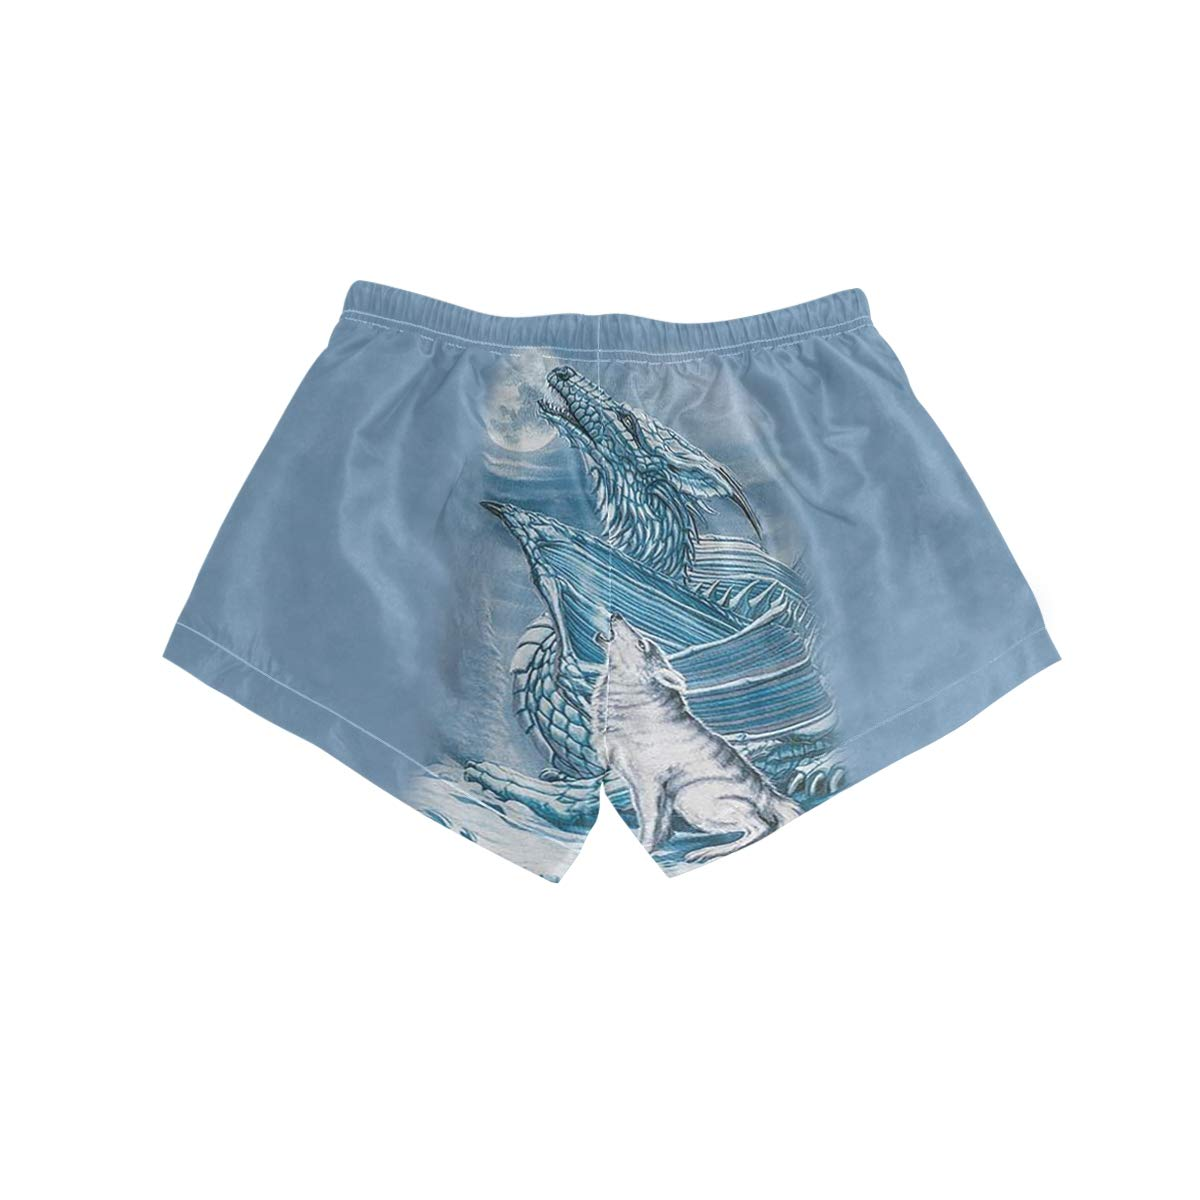 Womens Print Beach Shorts with Pockets Quick Dry Boardshort Swimming Trunks Tropical Short Dragon Wolf Moon